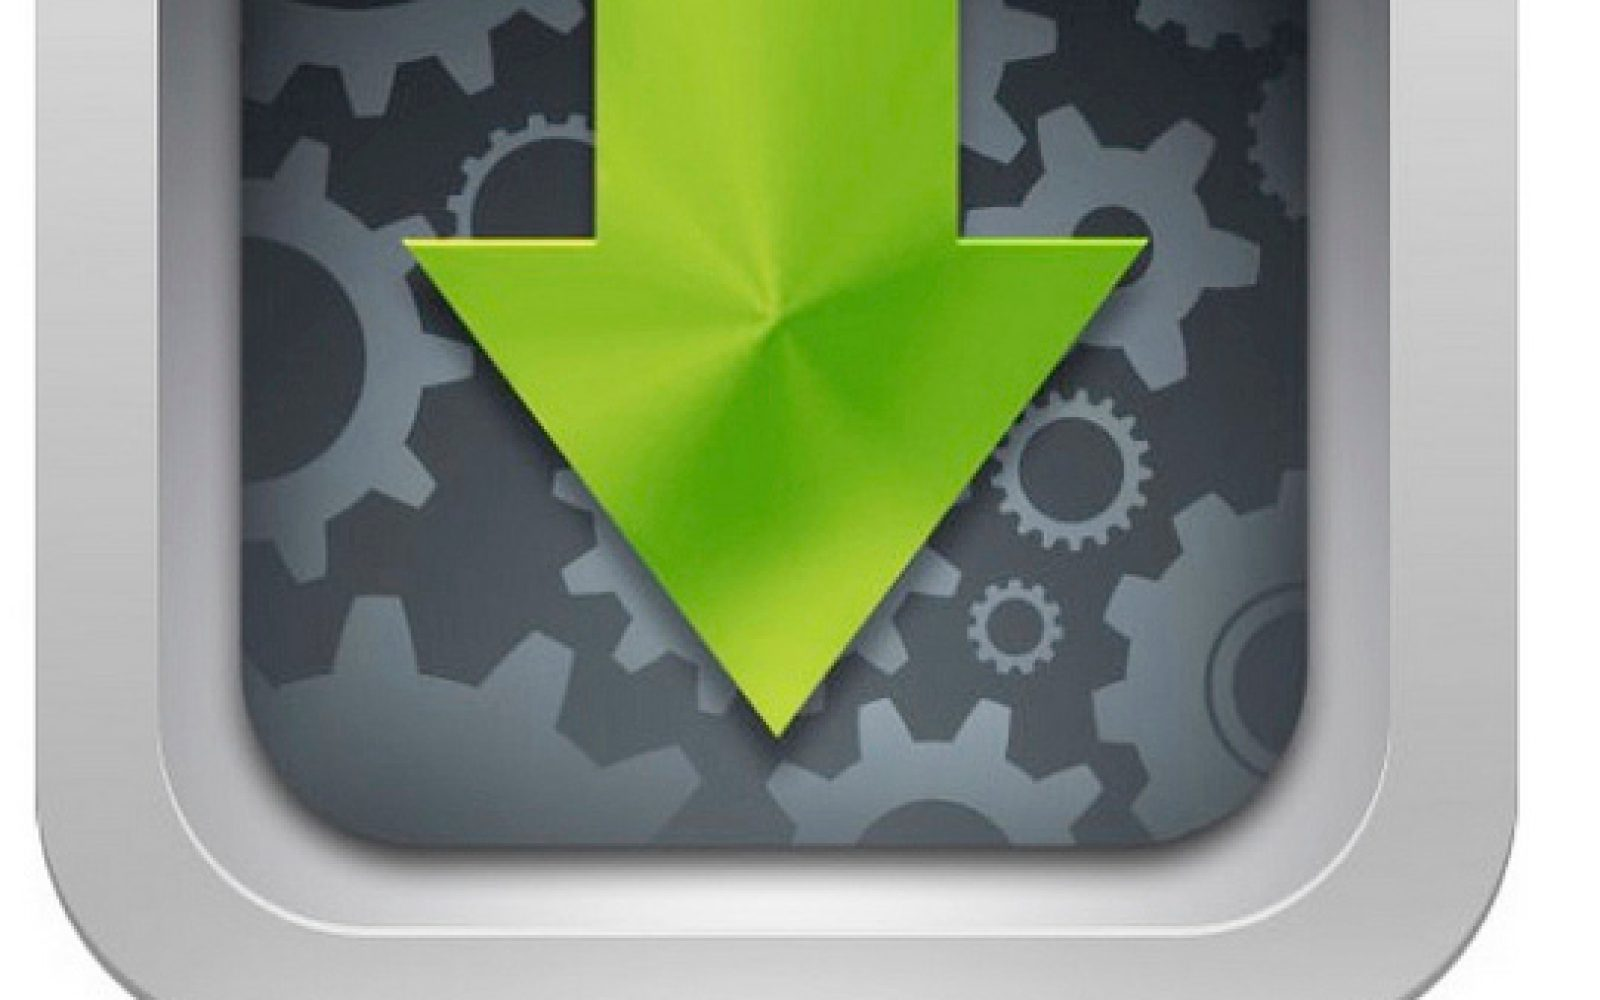 Apple sends 'take down' notices to cracked iOS apps creator